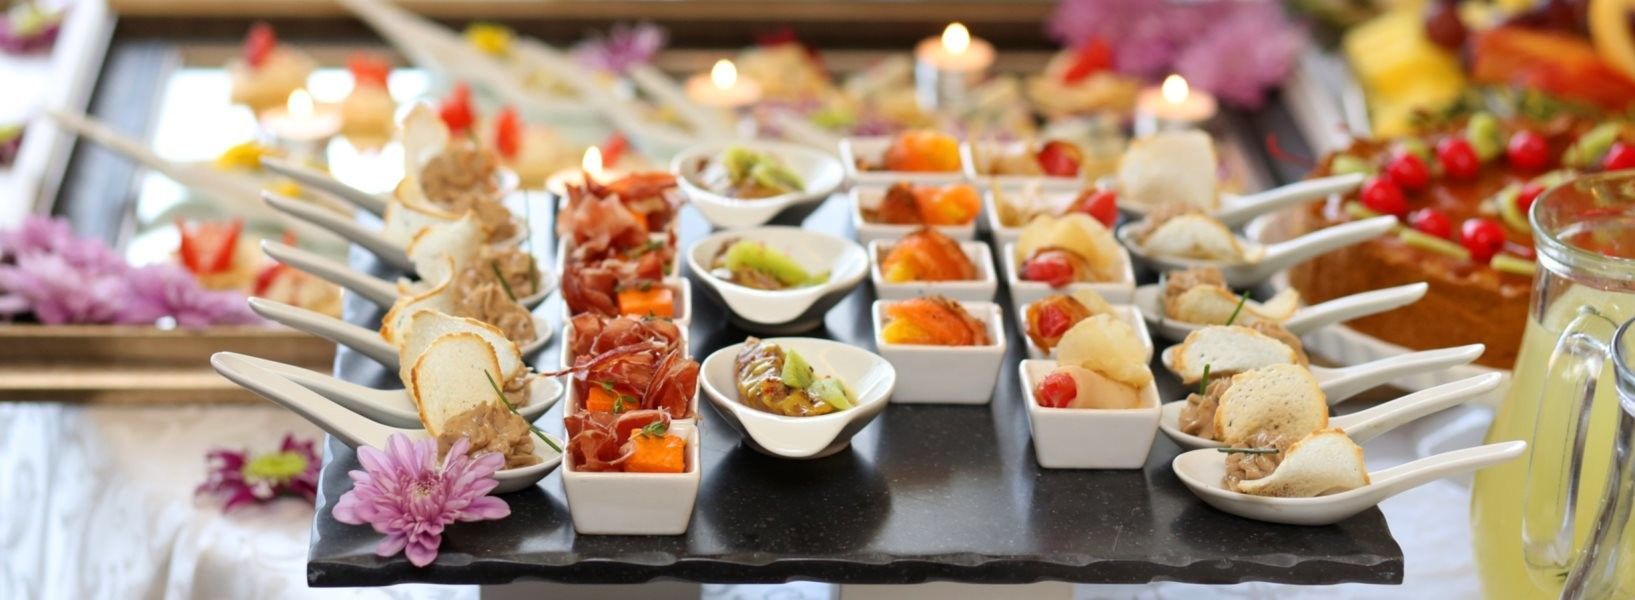 Are You Planning To Organize A Food Event If Yes Then It Is Essential Wedding Cateringwedding